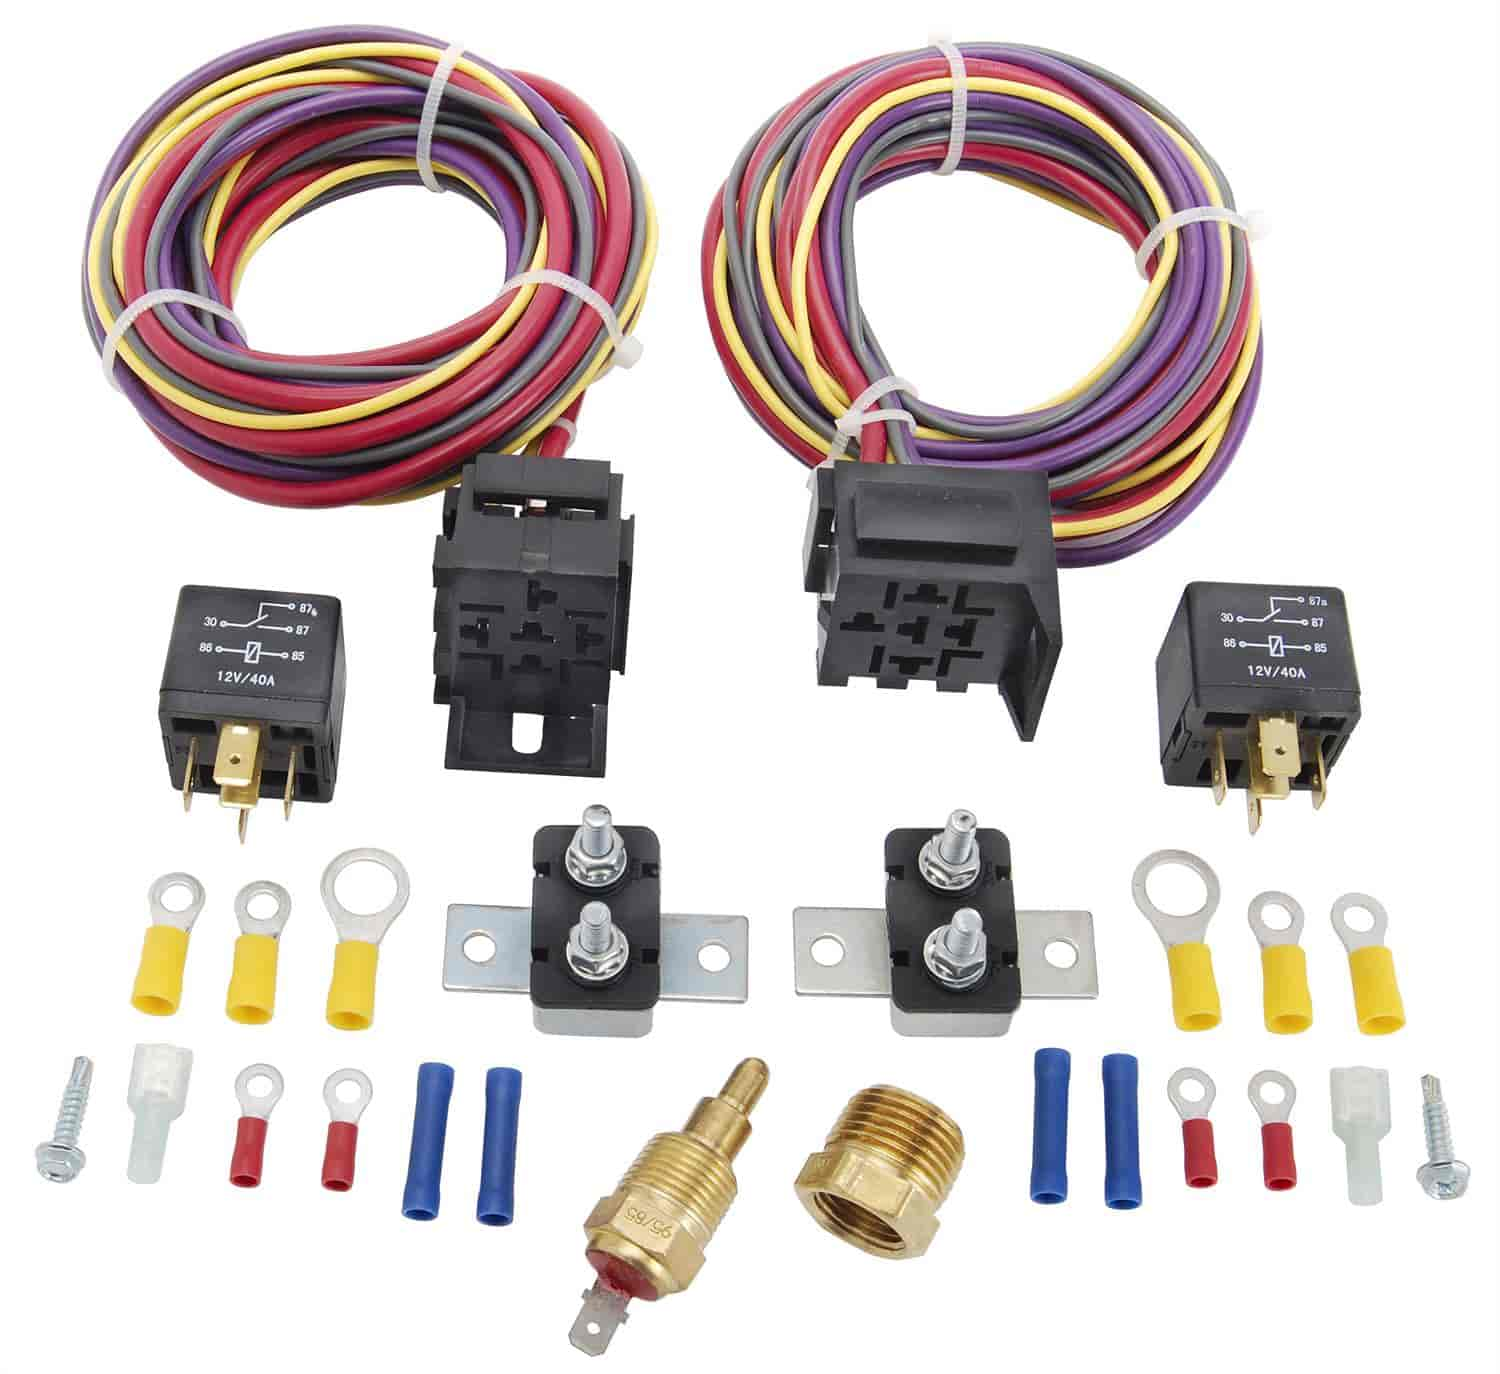 555 10571 jegs performance products 10571 dual fan wiring harness & relay  at webbmarketing.co